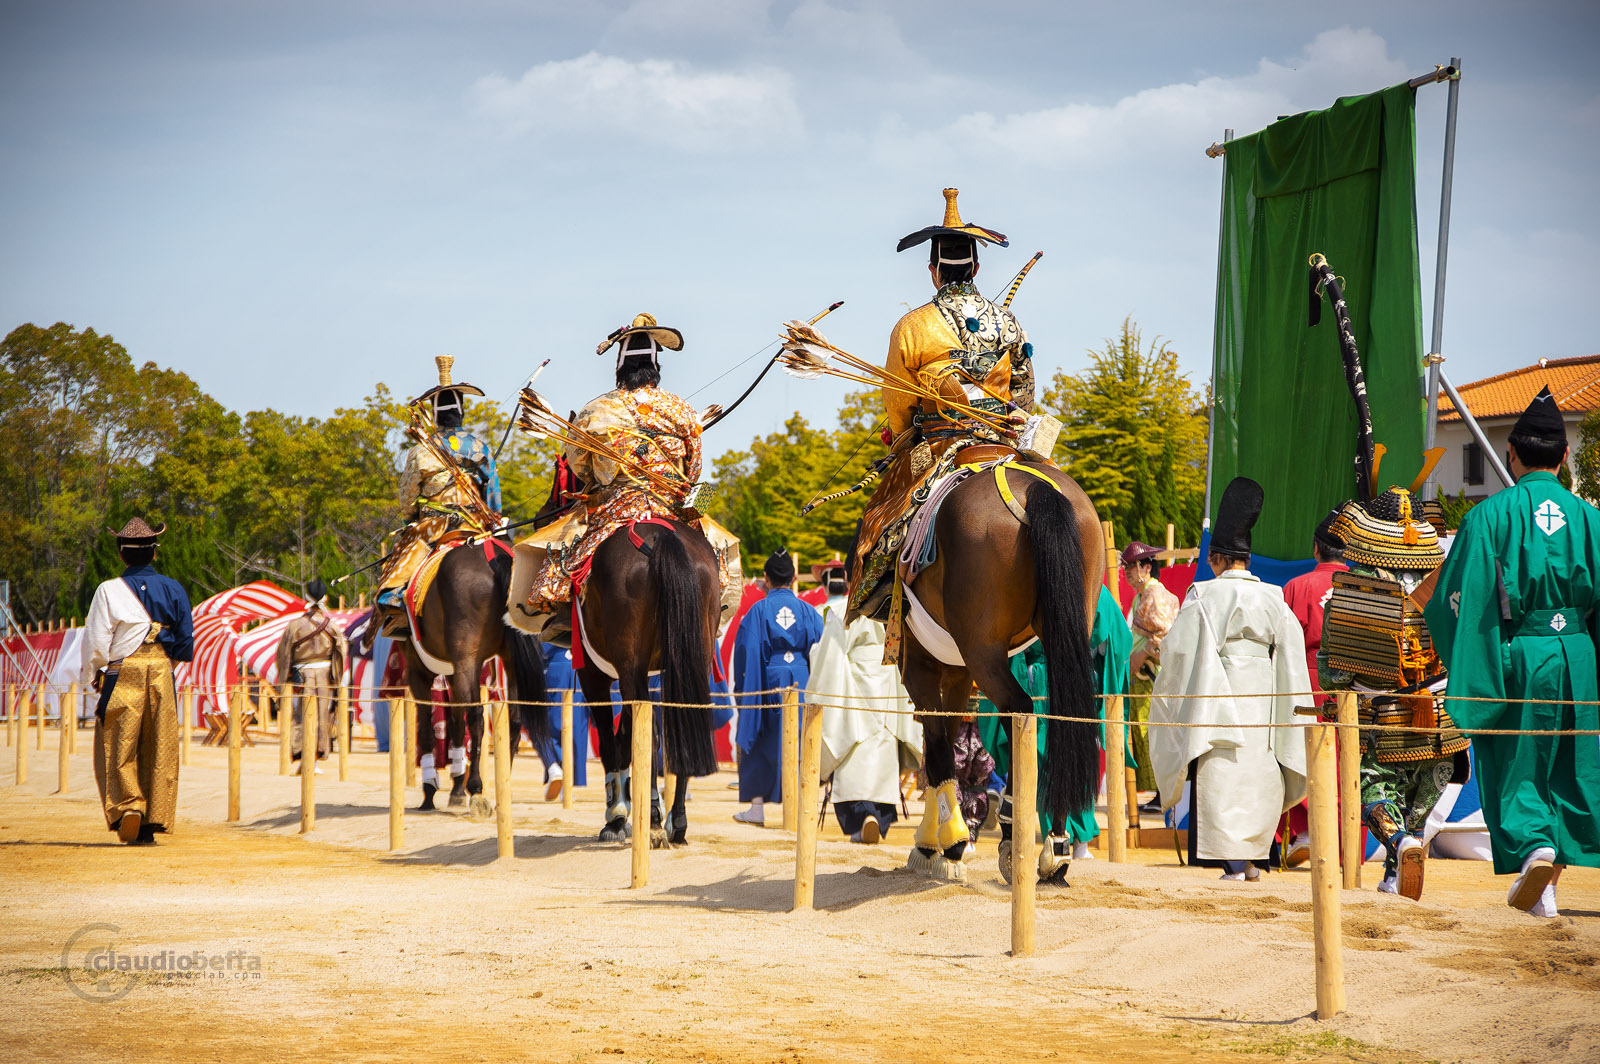 Japan, Yabusame, Traditional mounted archery, Starting point